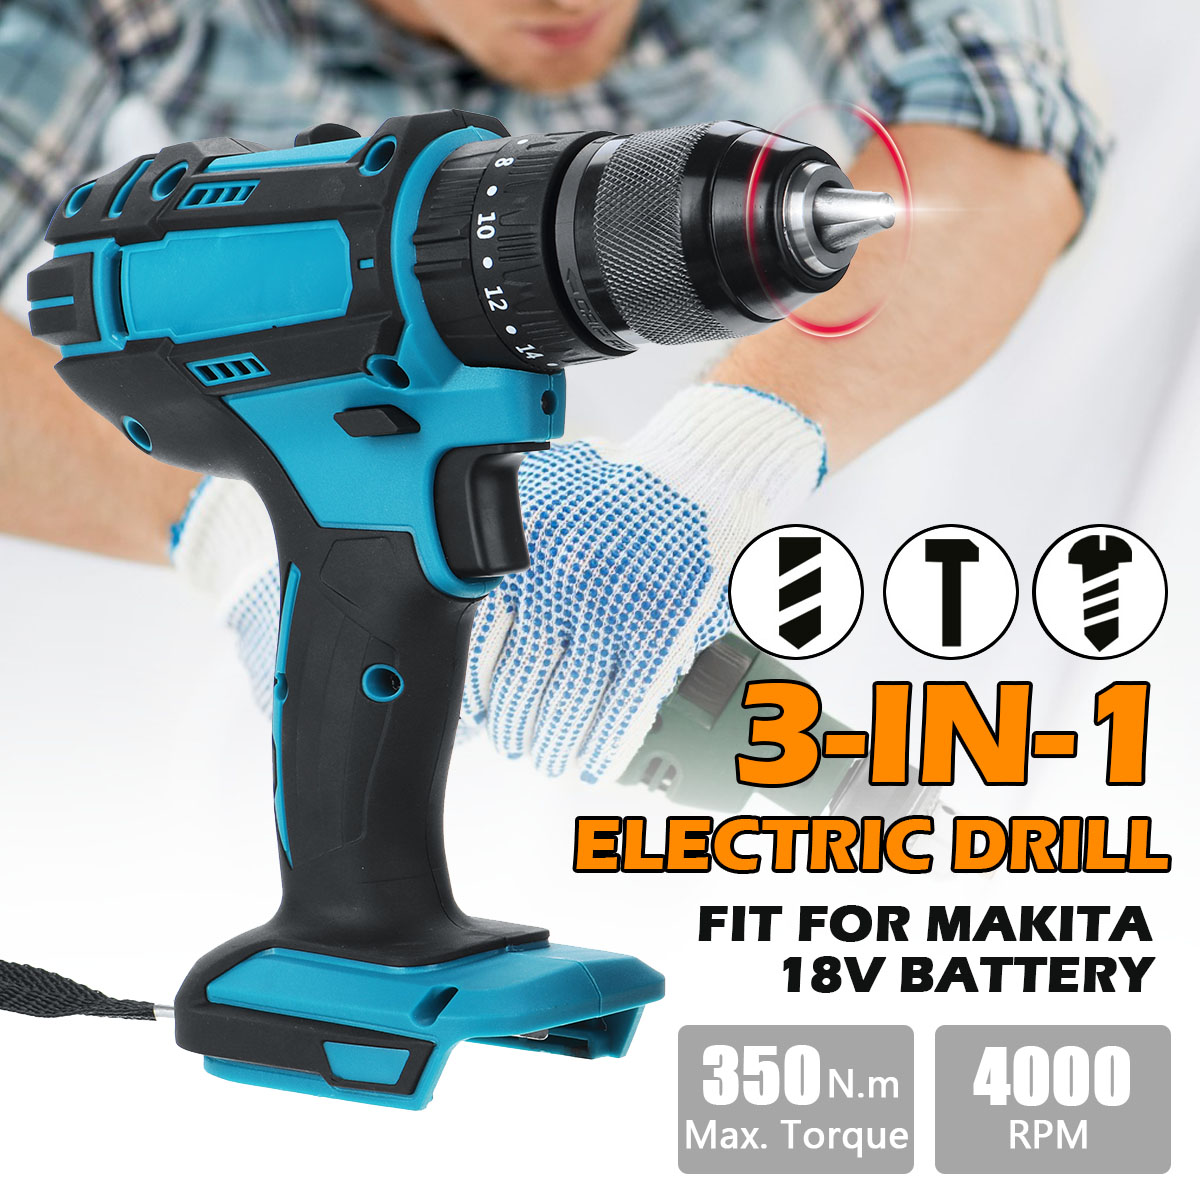 3 In 1 Cordless Drill Electric Controller Household 350Nm Torque Gear Drill Mini Power Tools Fit For Makita 18V Battery